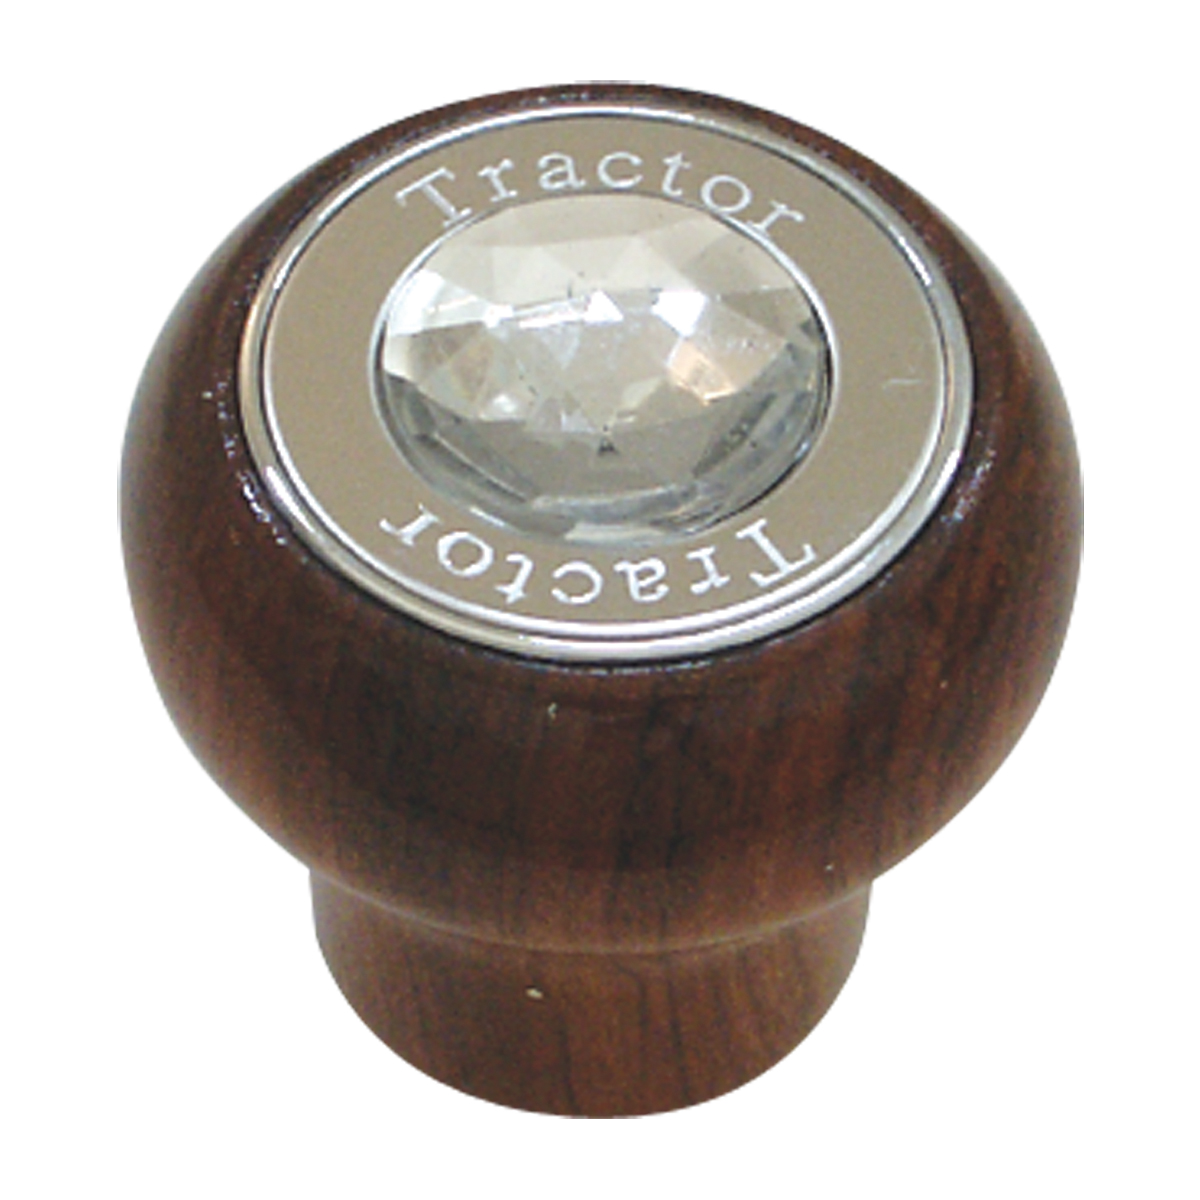 95862 Tractor Screw-In Air Valve Control Knob